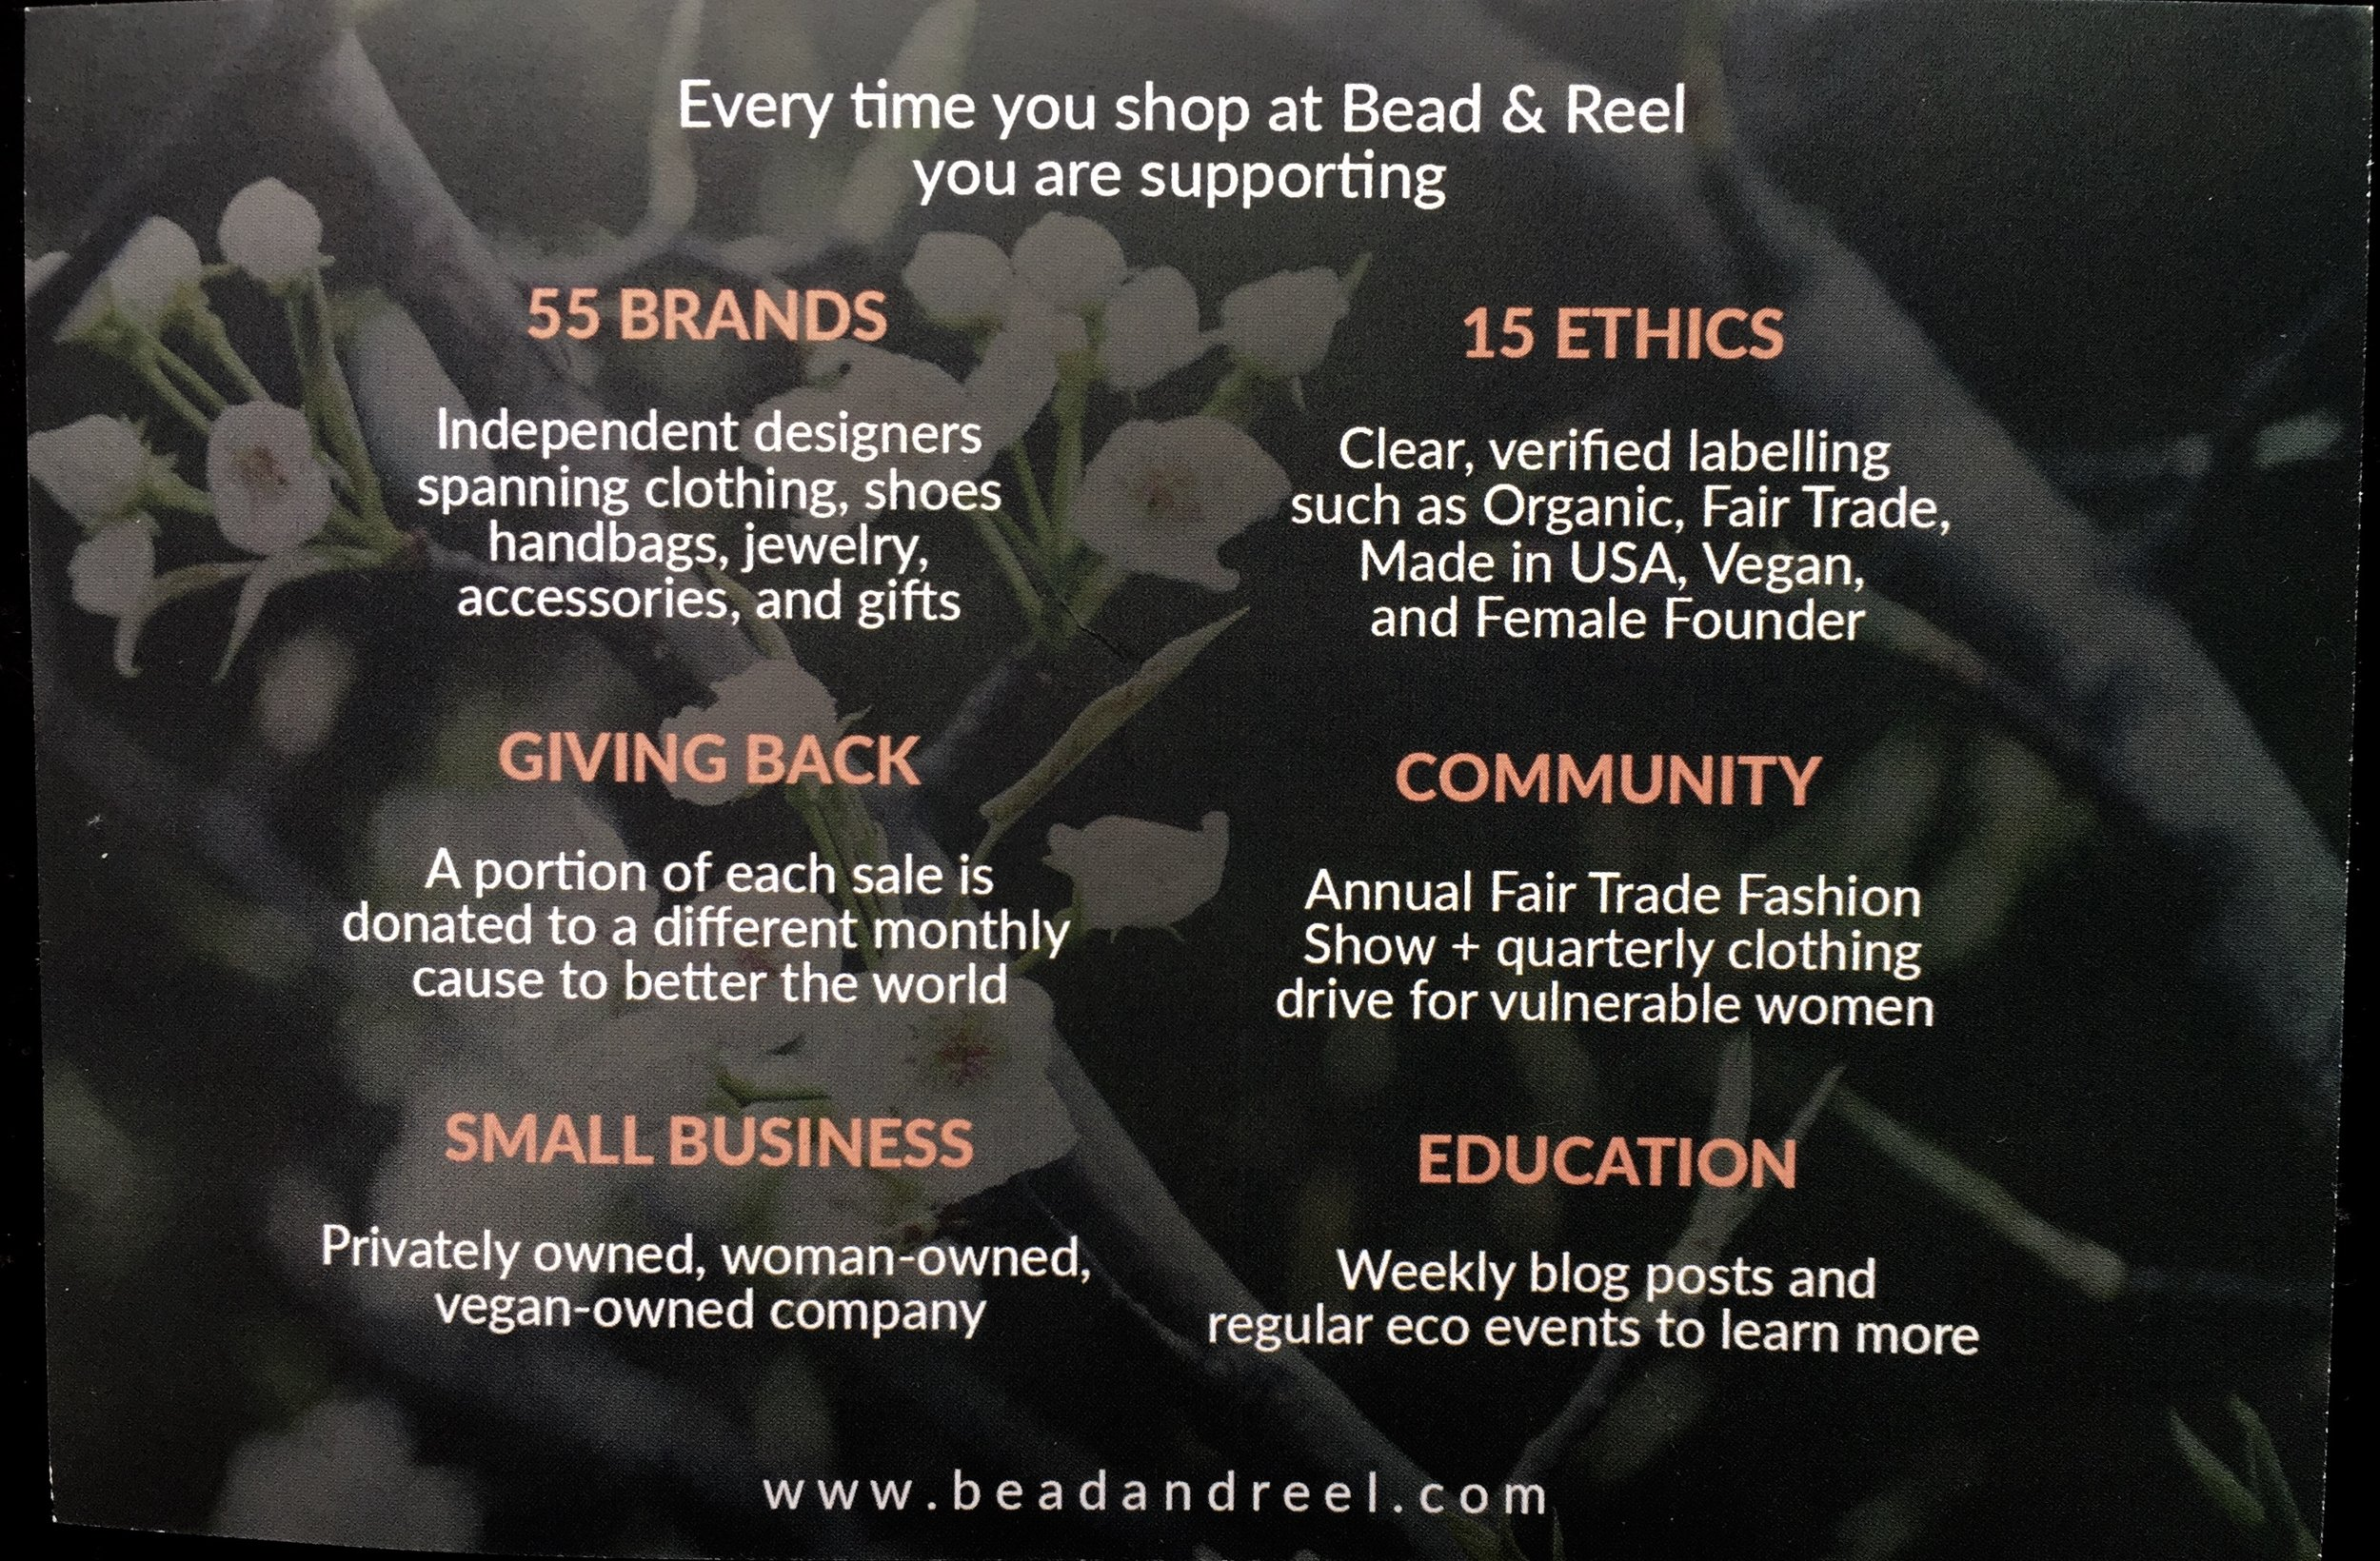 Bead & Reel card included with gift box